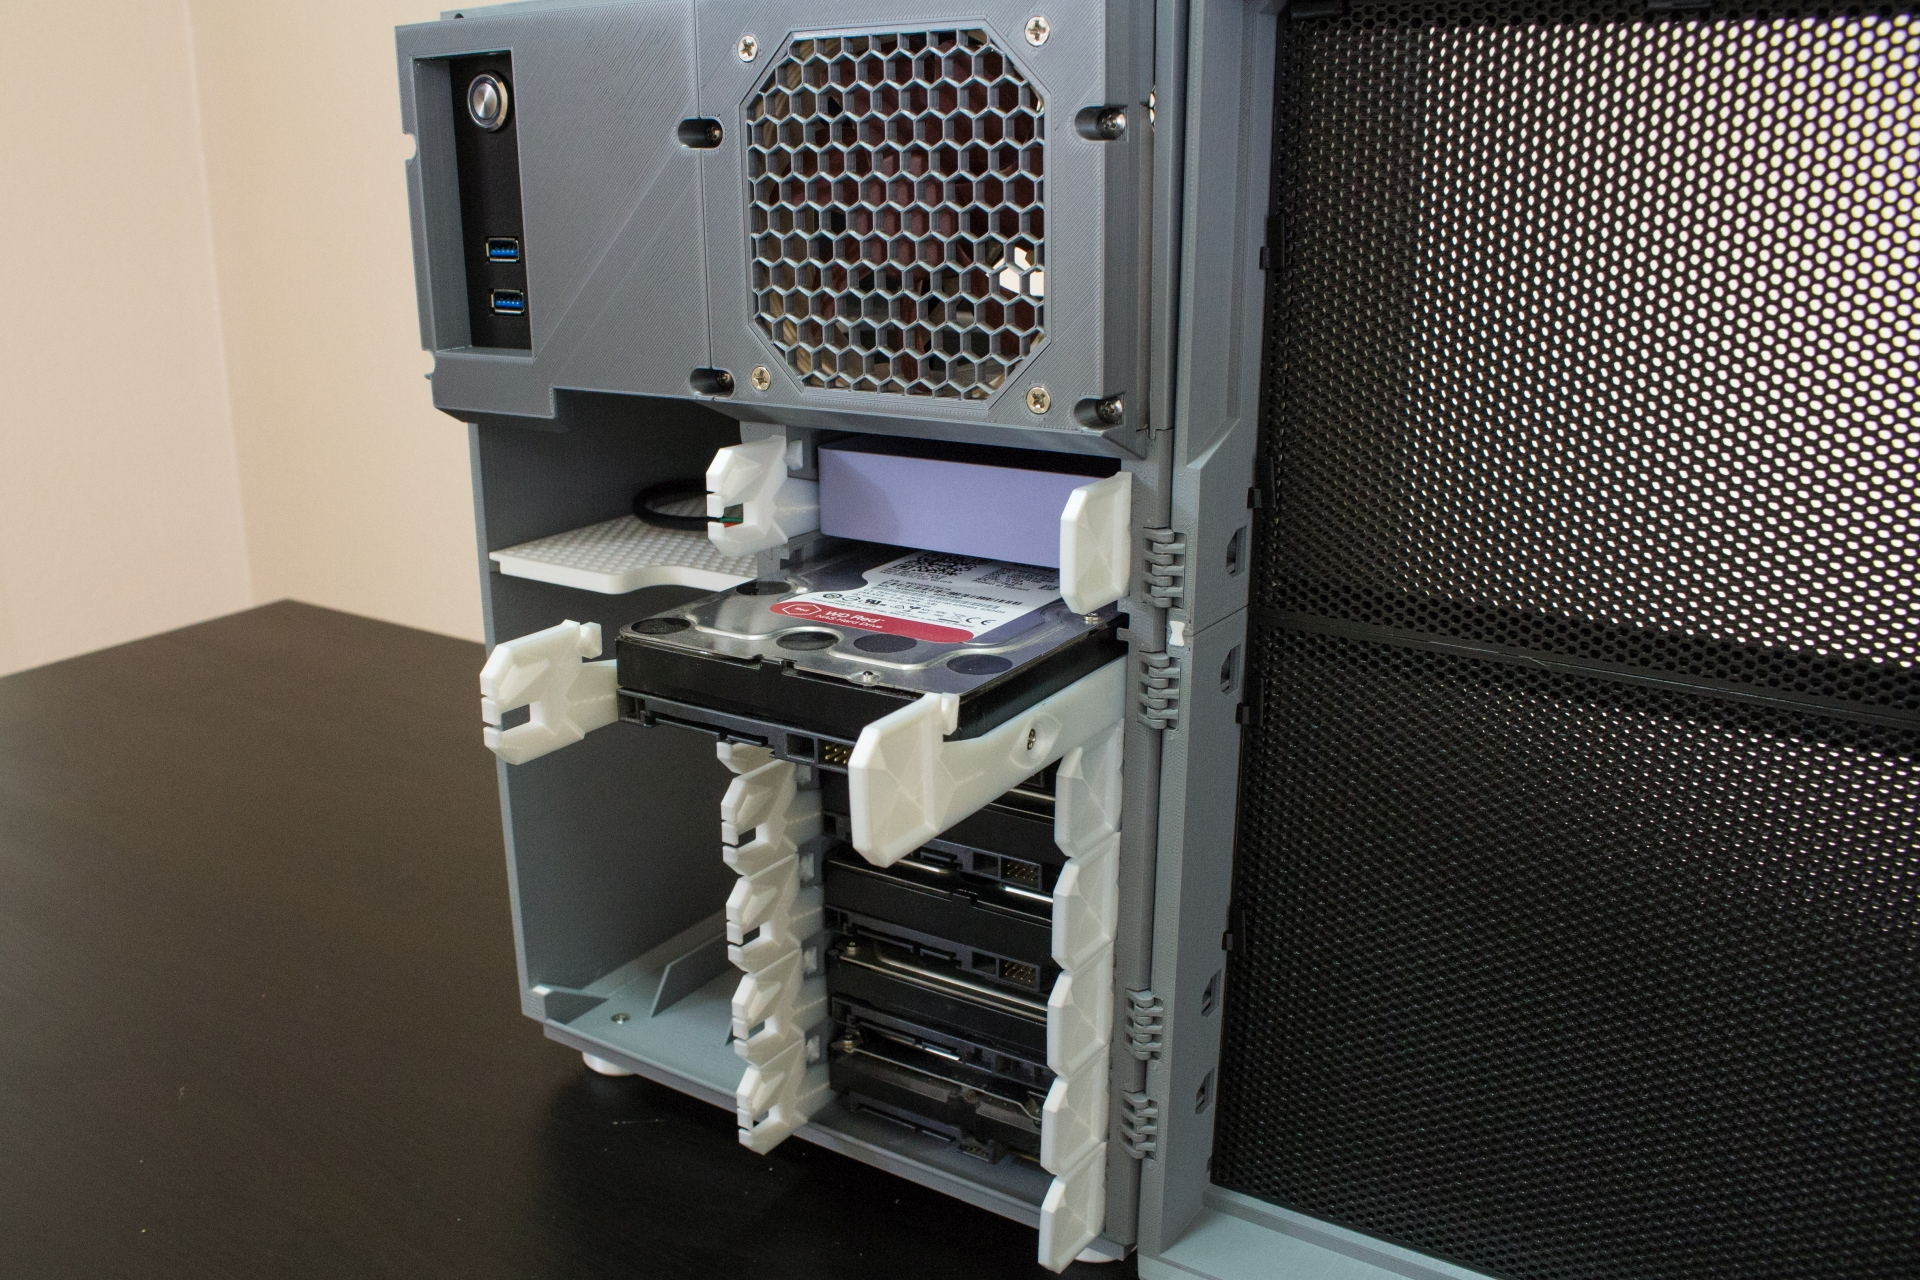 HDDs installed in cage #2